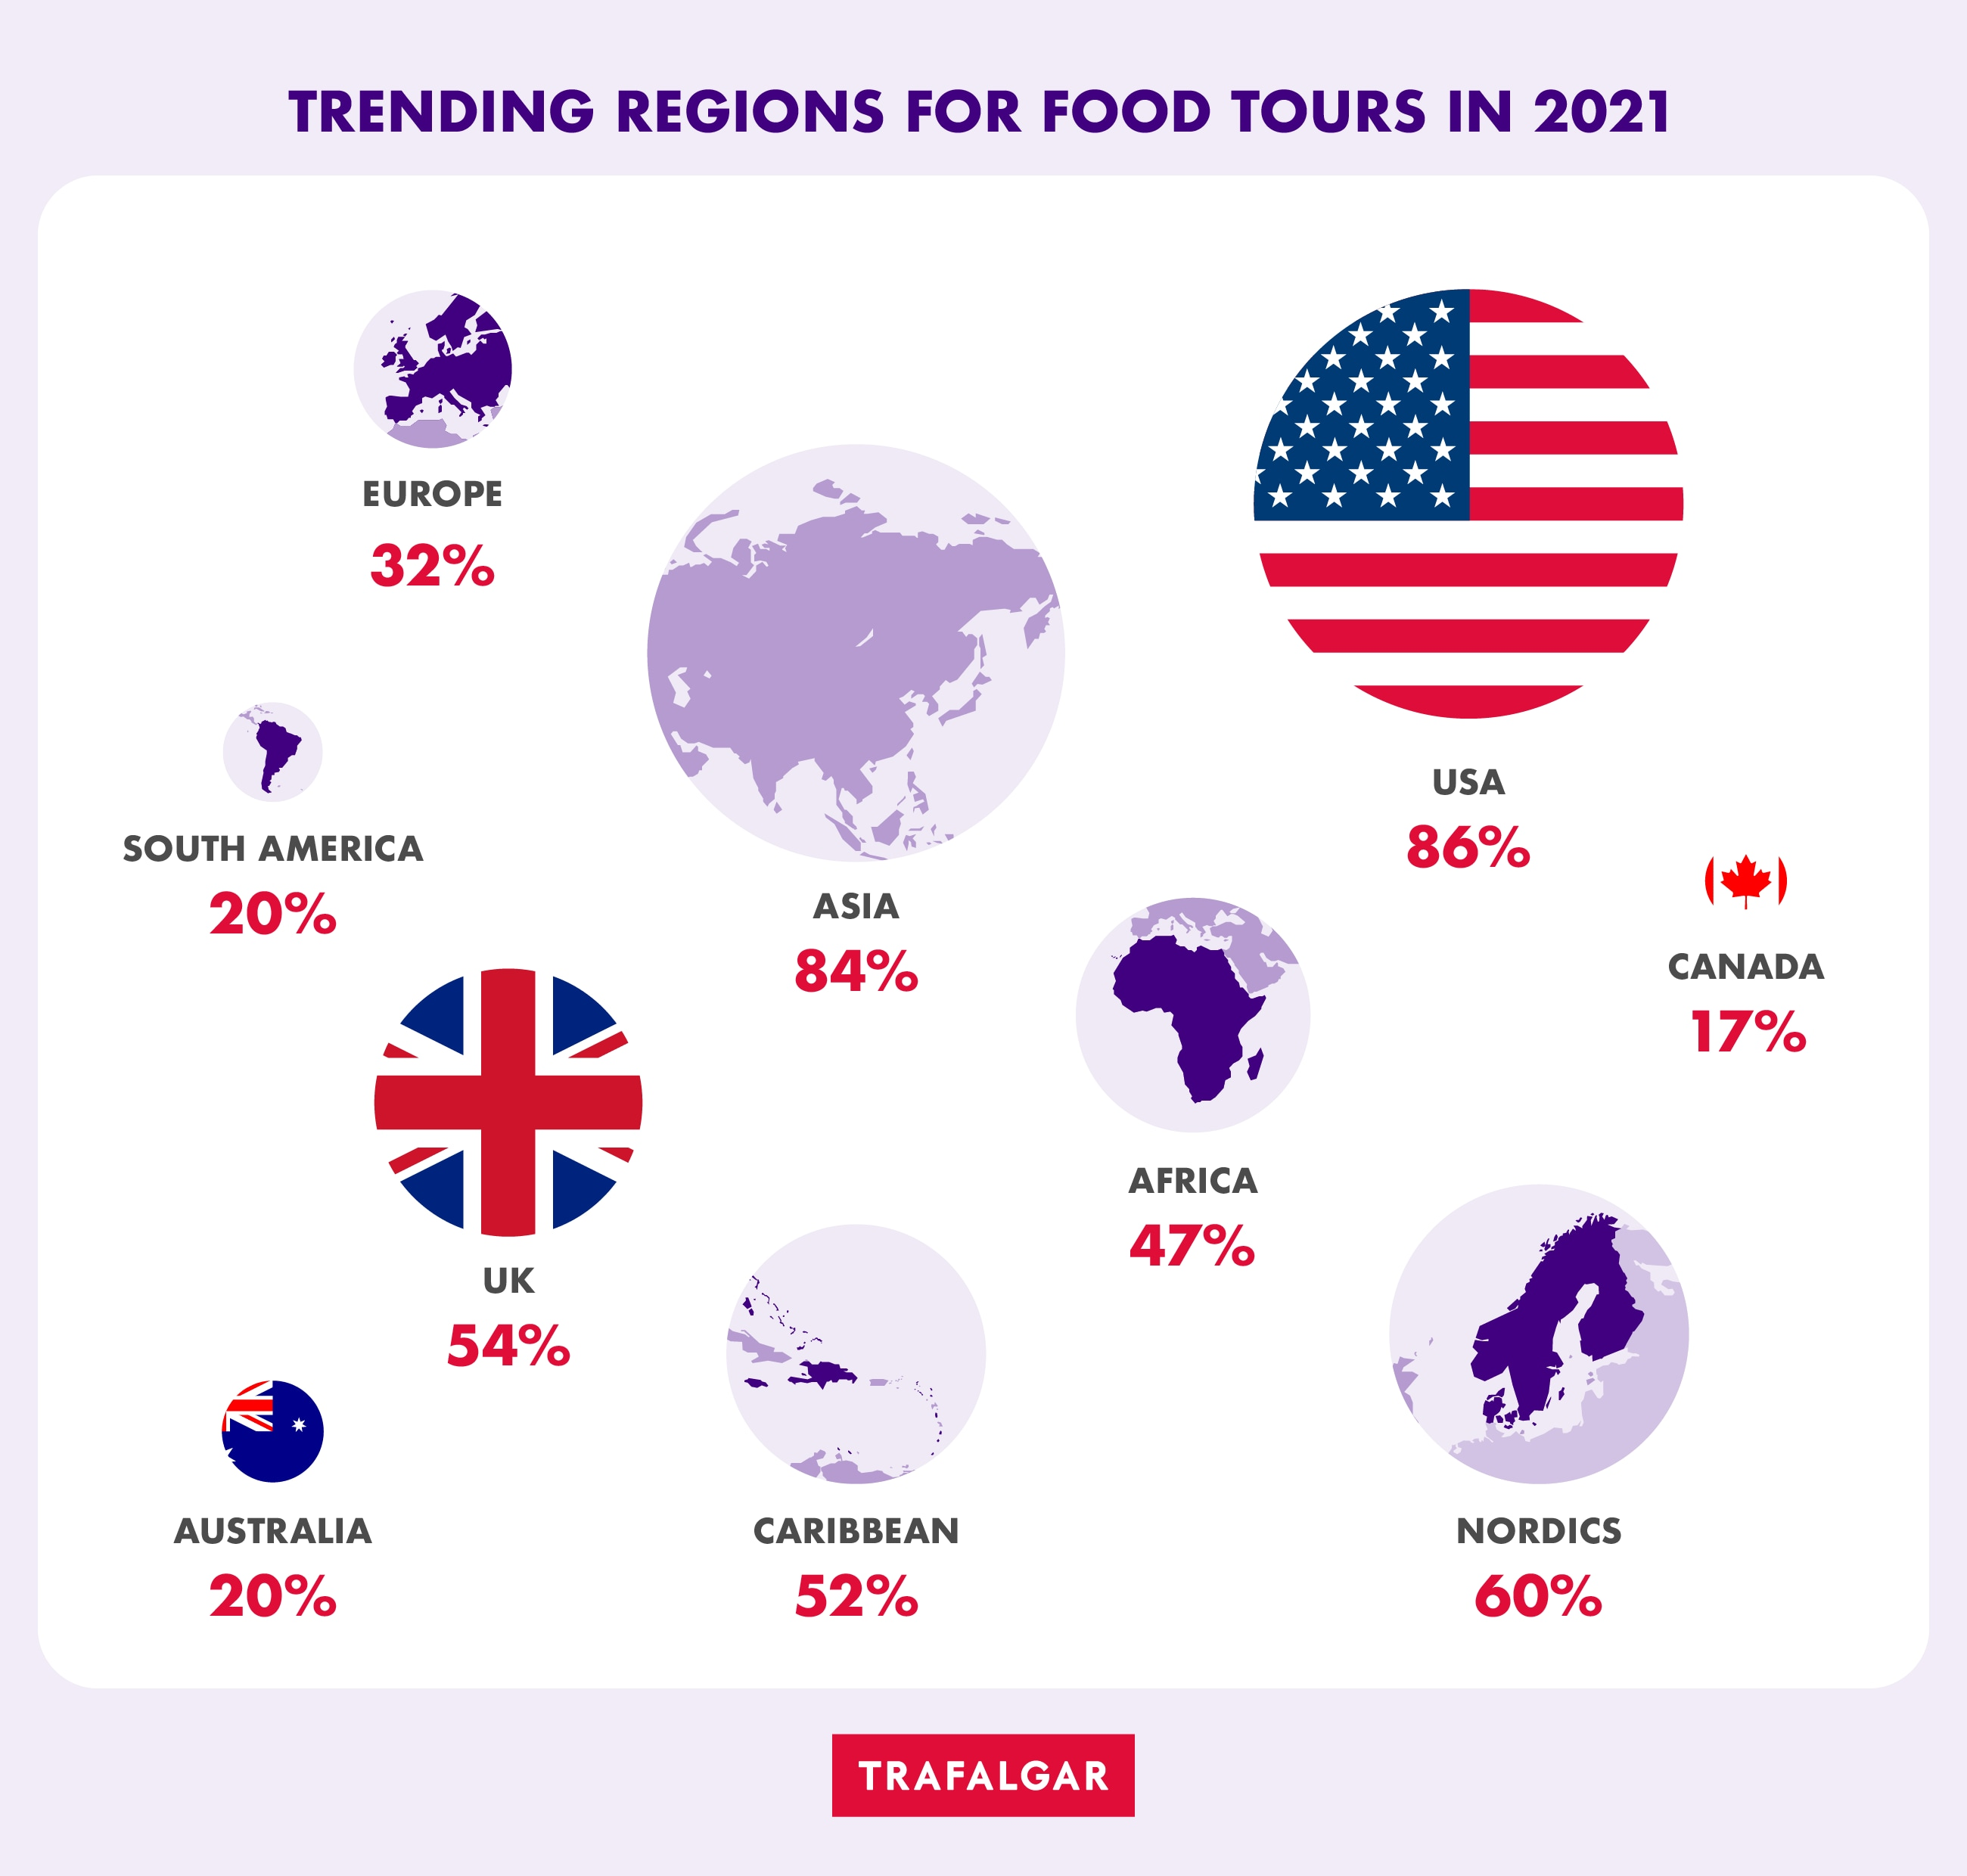 Trending regions for food tours in 2021 Infographic